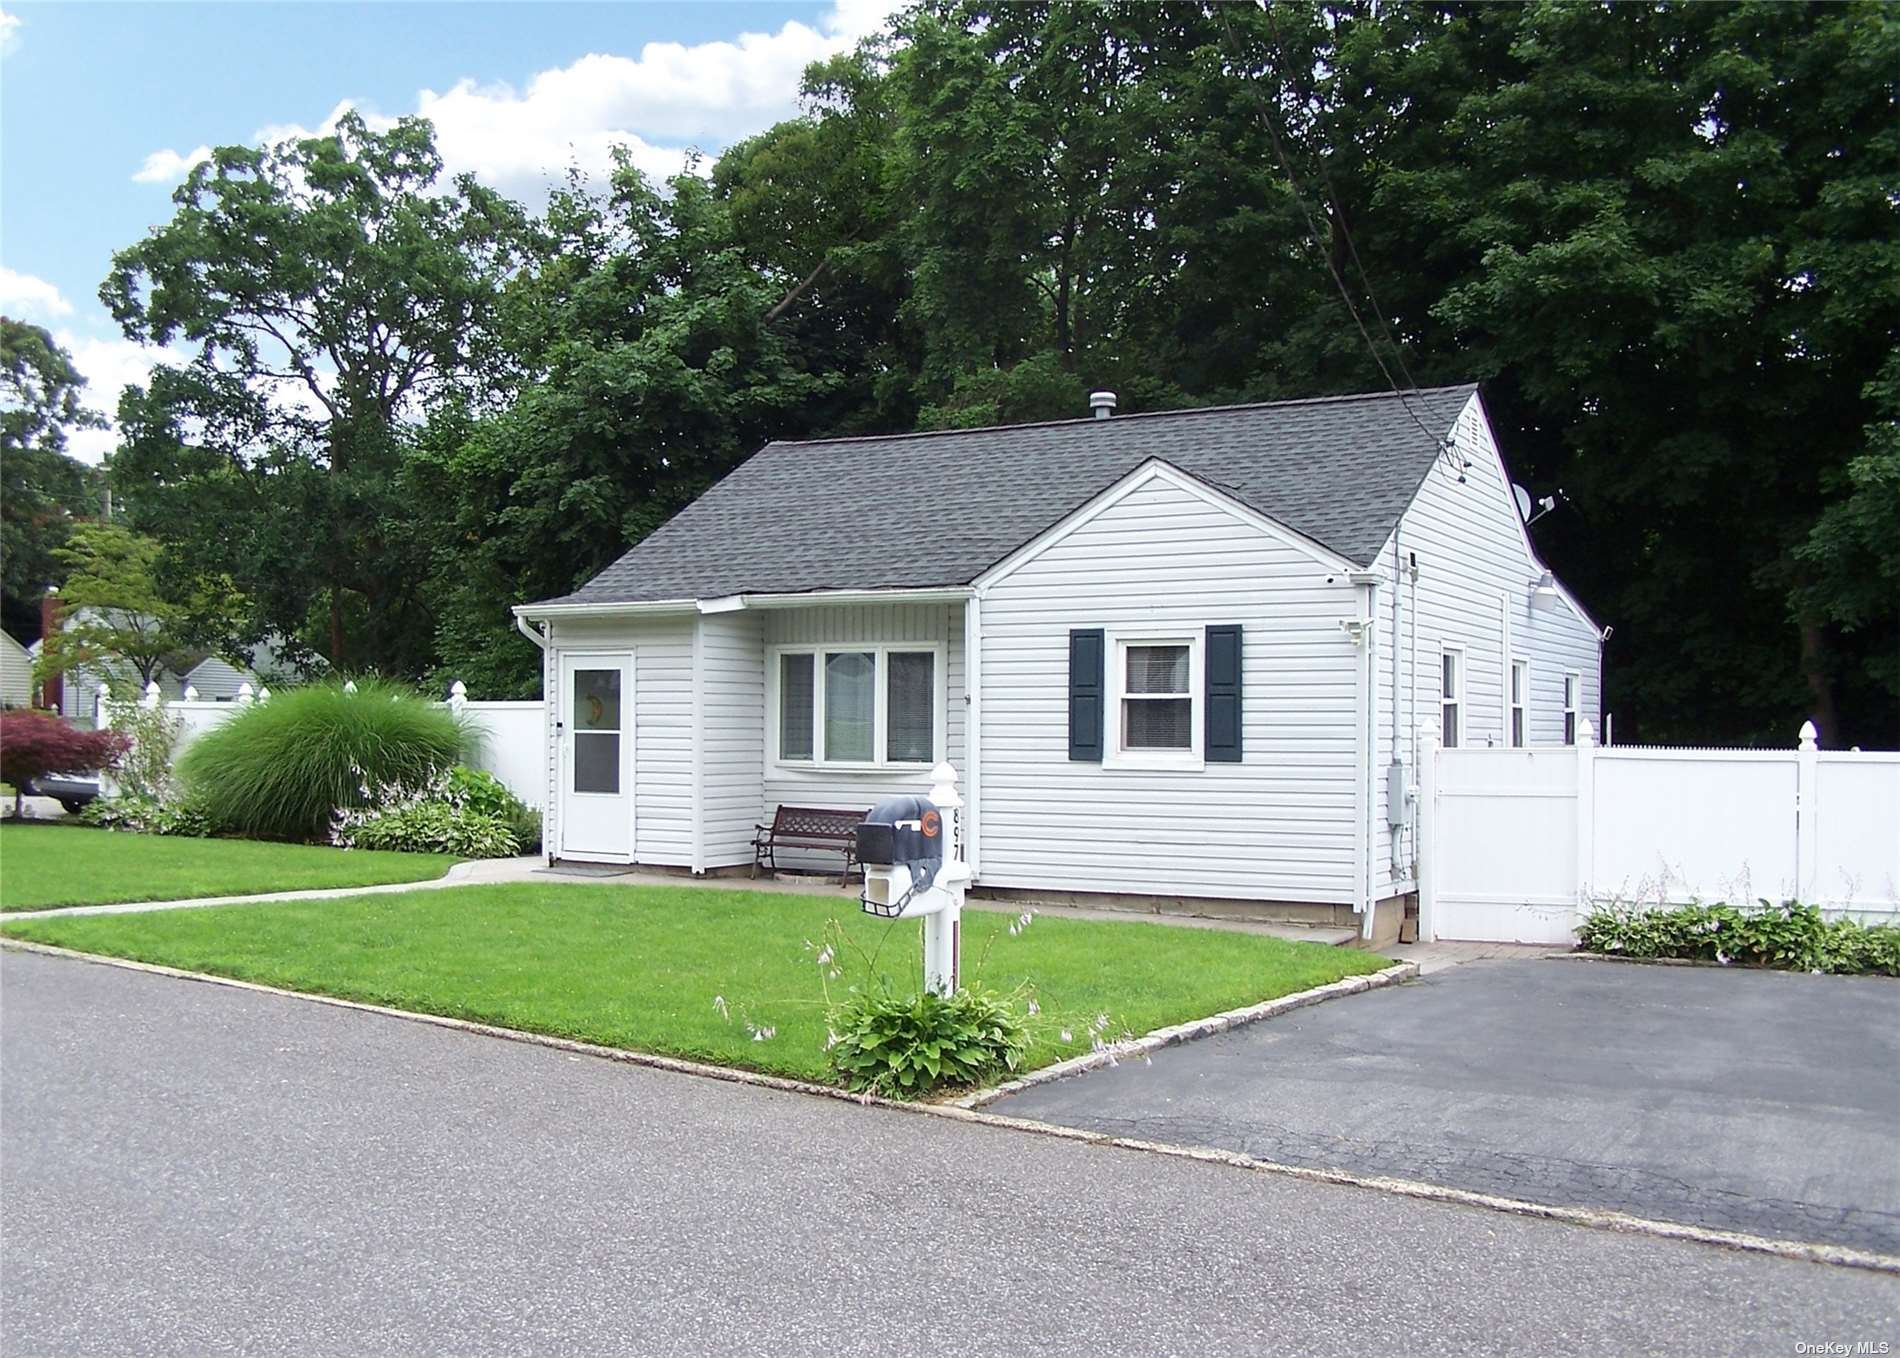 897 Old North Ocean Avenue, Patchogue, NY 11772 - MLS#: 3330041